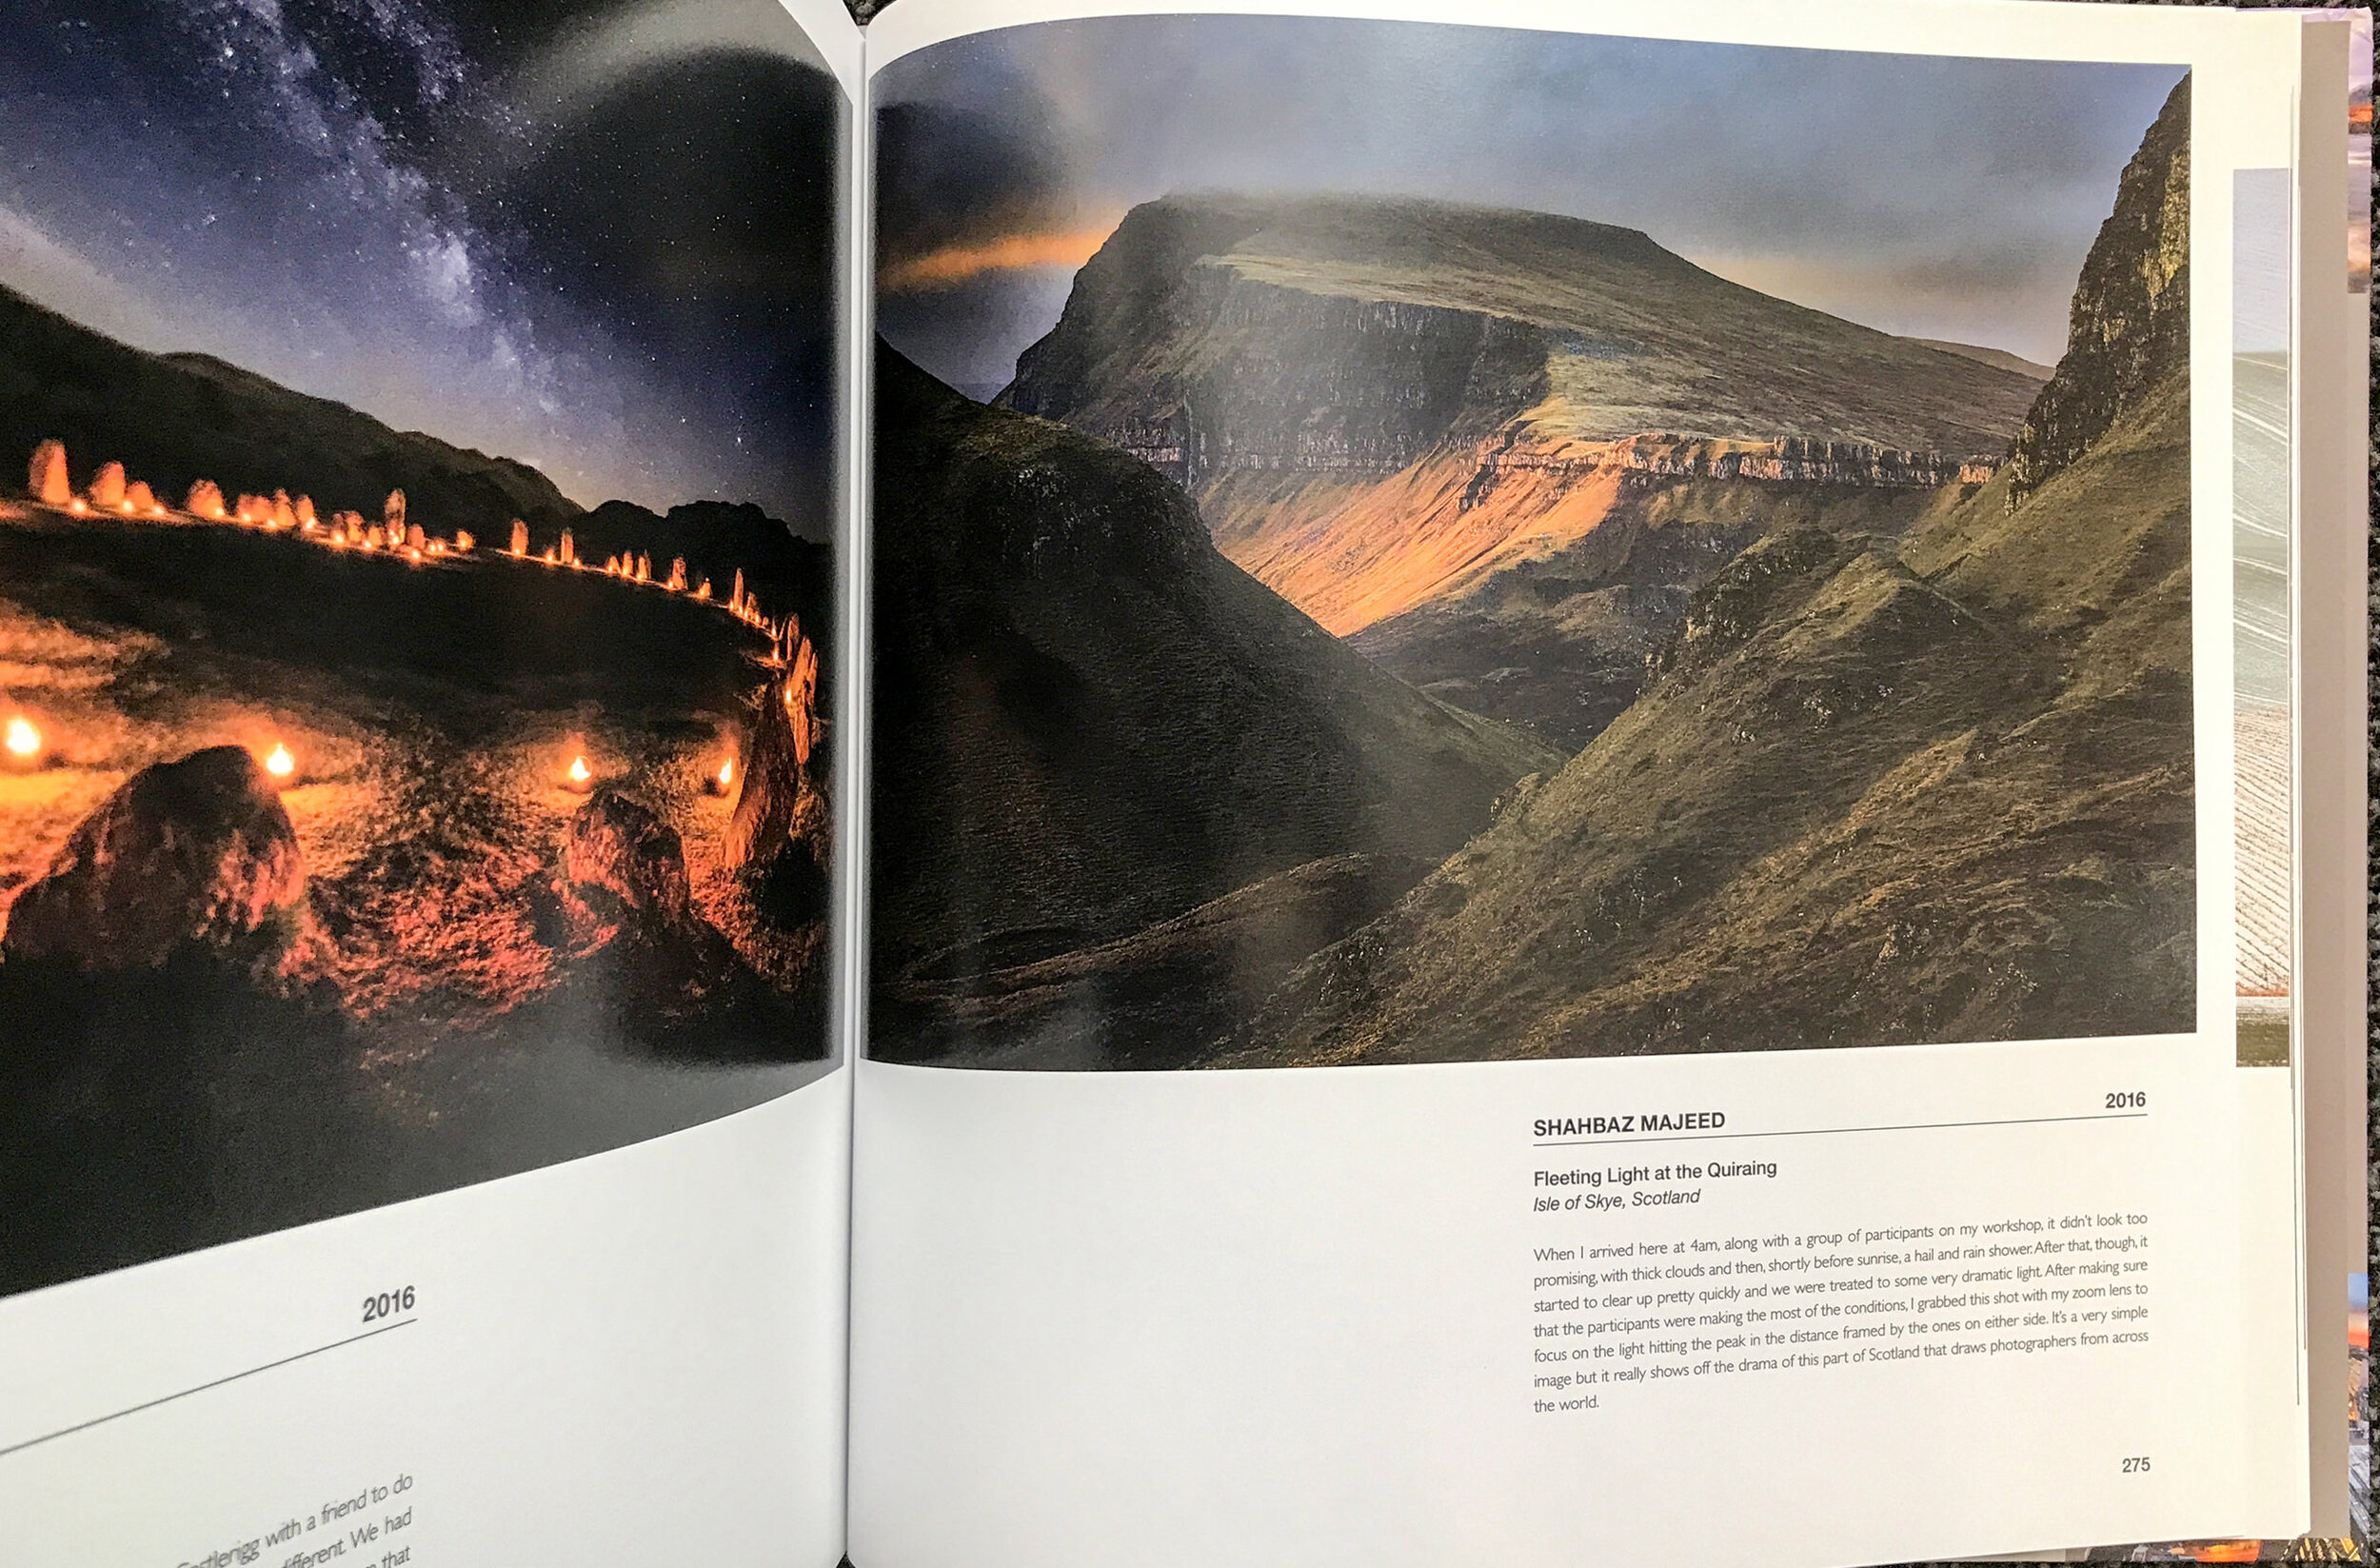 Landscape Photographer of the Year - 10 Year Special Edition - My Image